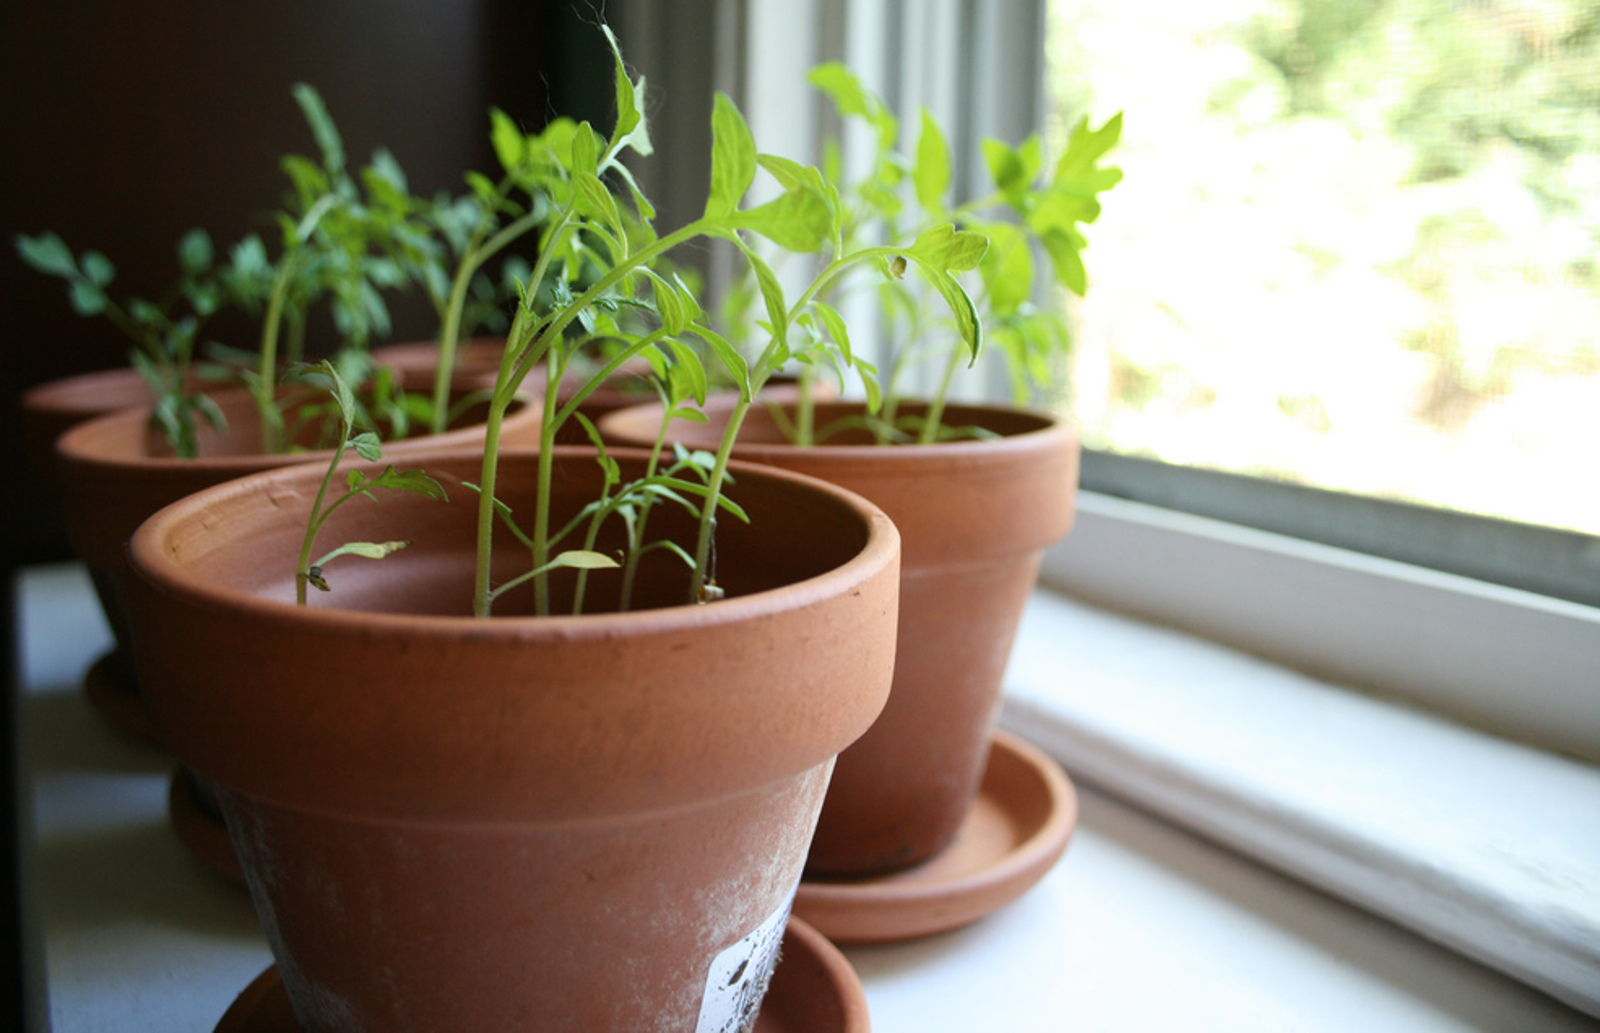 7 Edible Plants Well-Suited for Growing on Windowsills